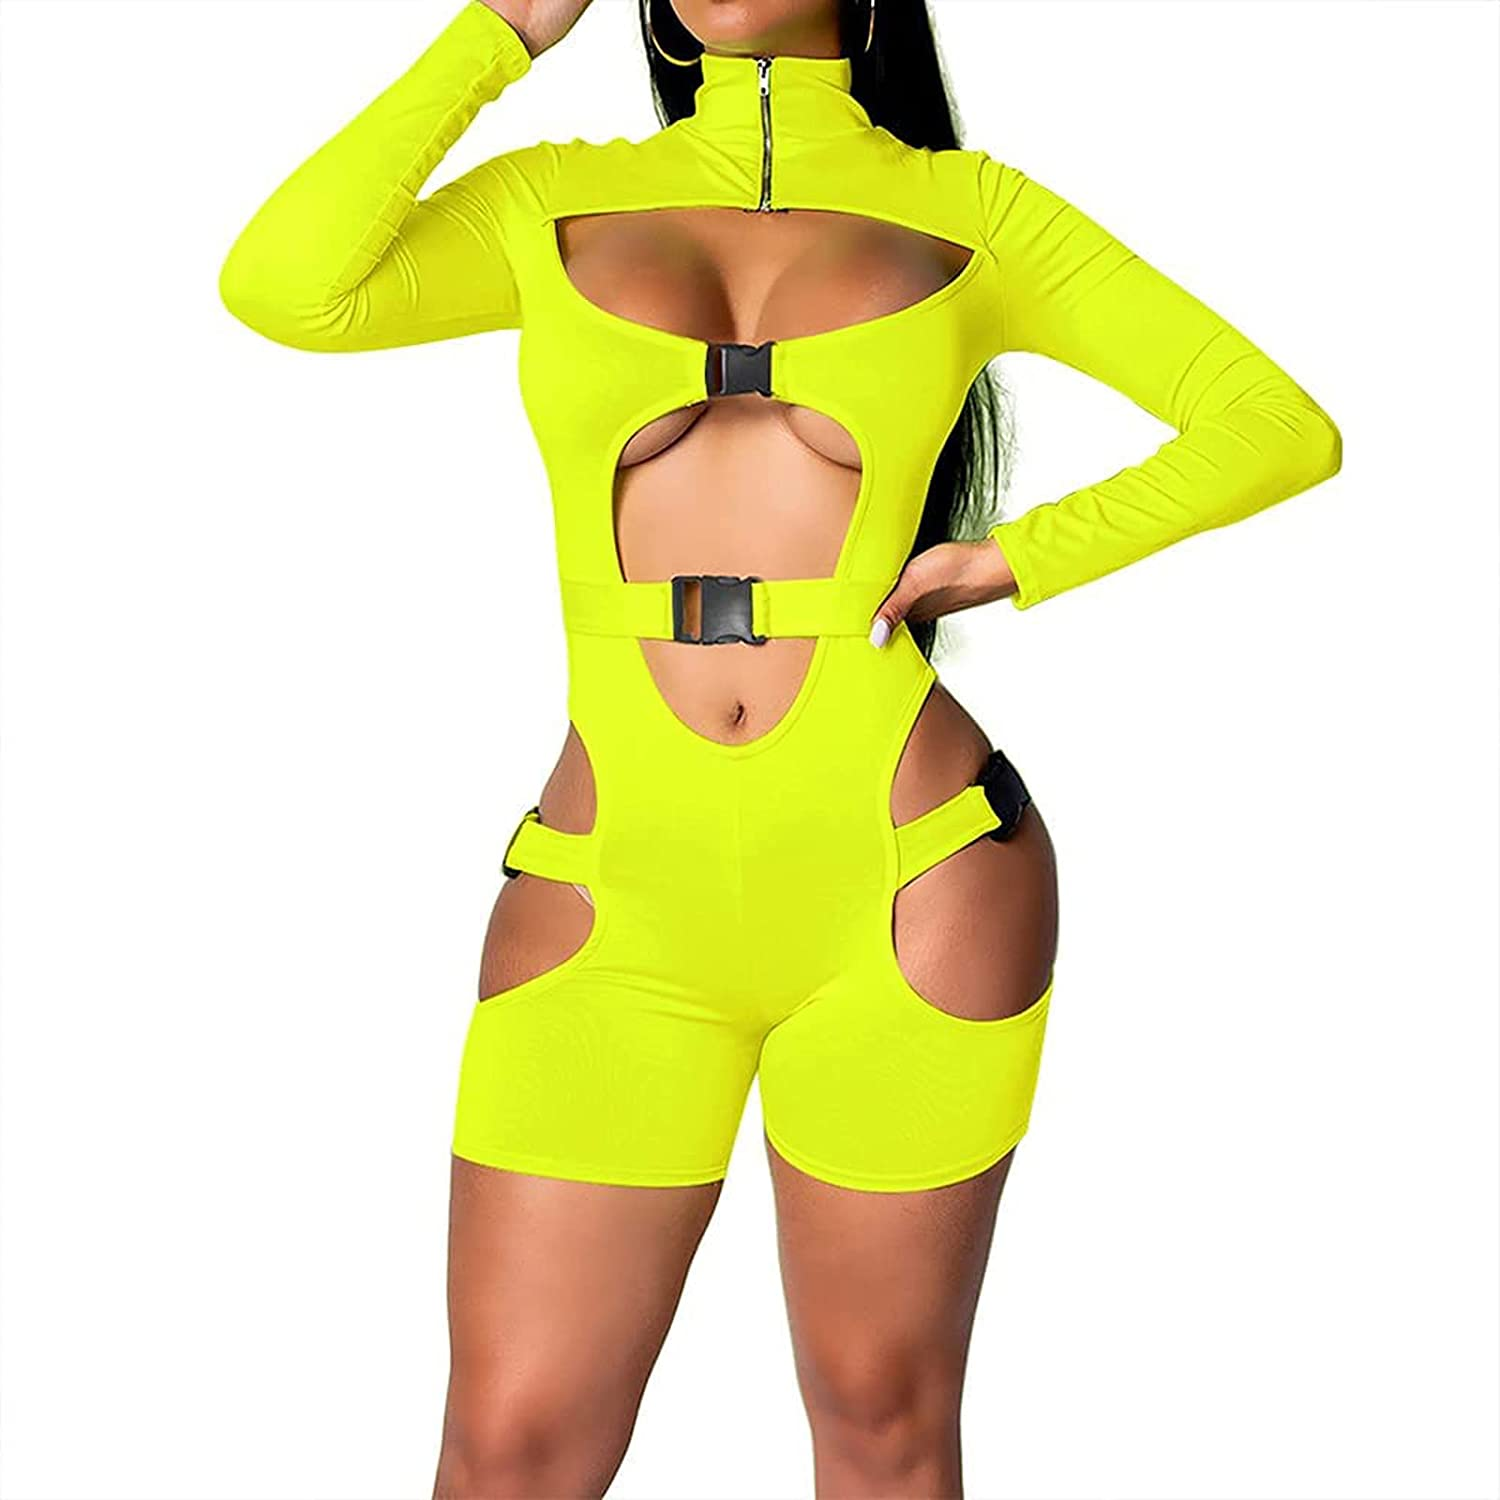 BEYOLO Women's Bodysuit Sexy Long-Sleeved Cutout Jumpsuit, High-Necked Cycling Shorts